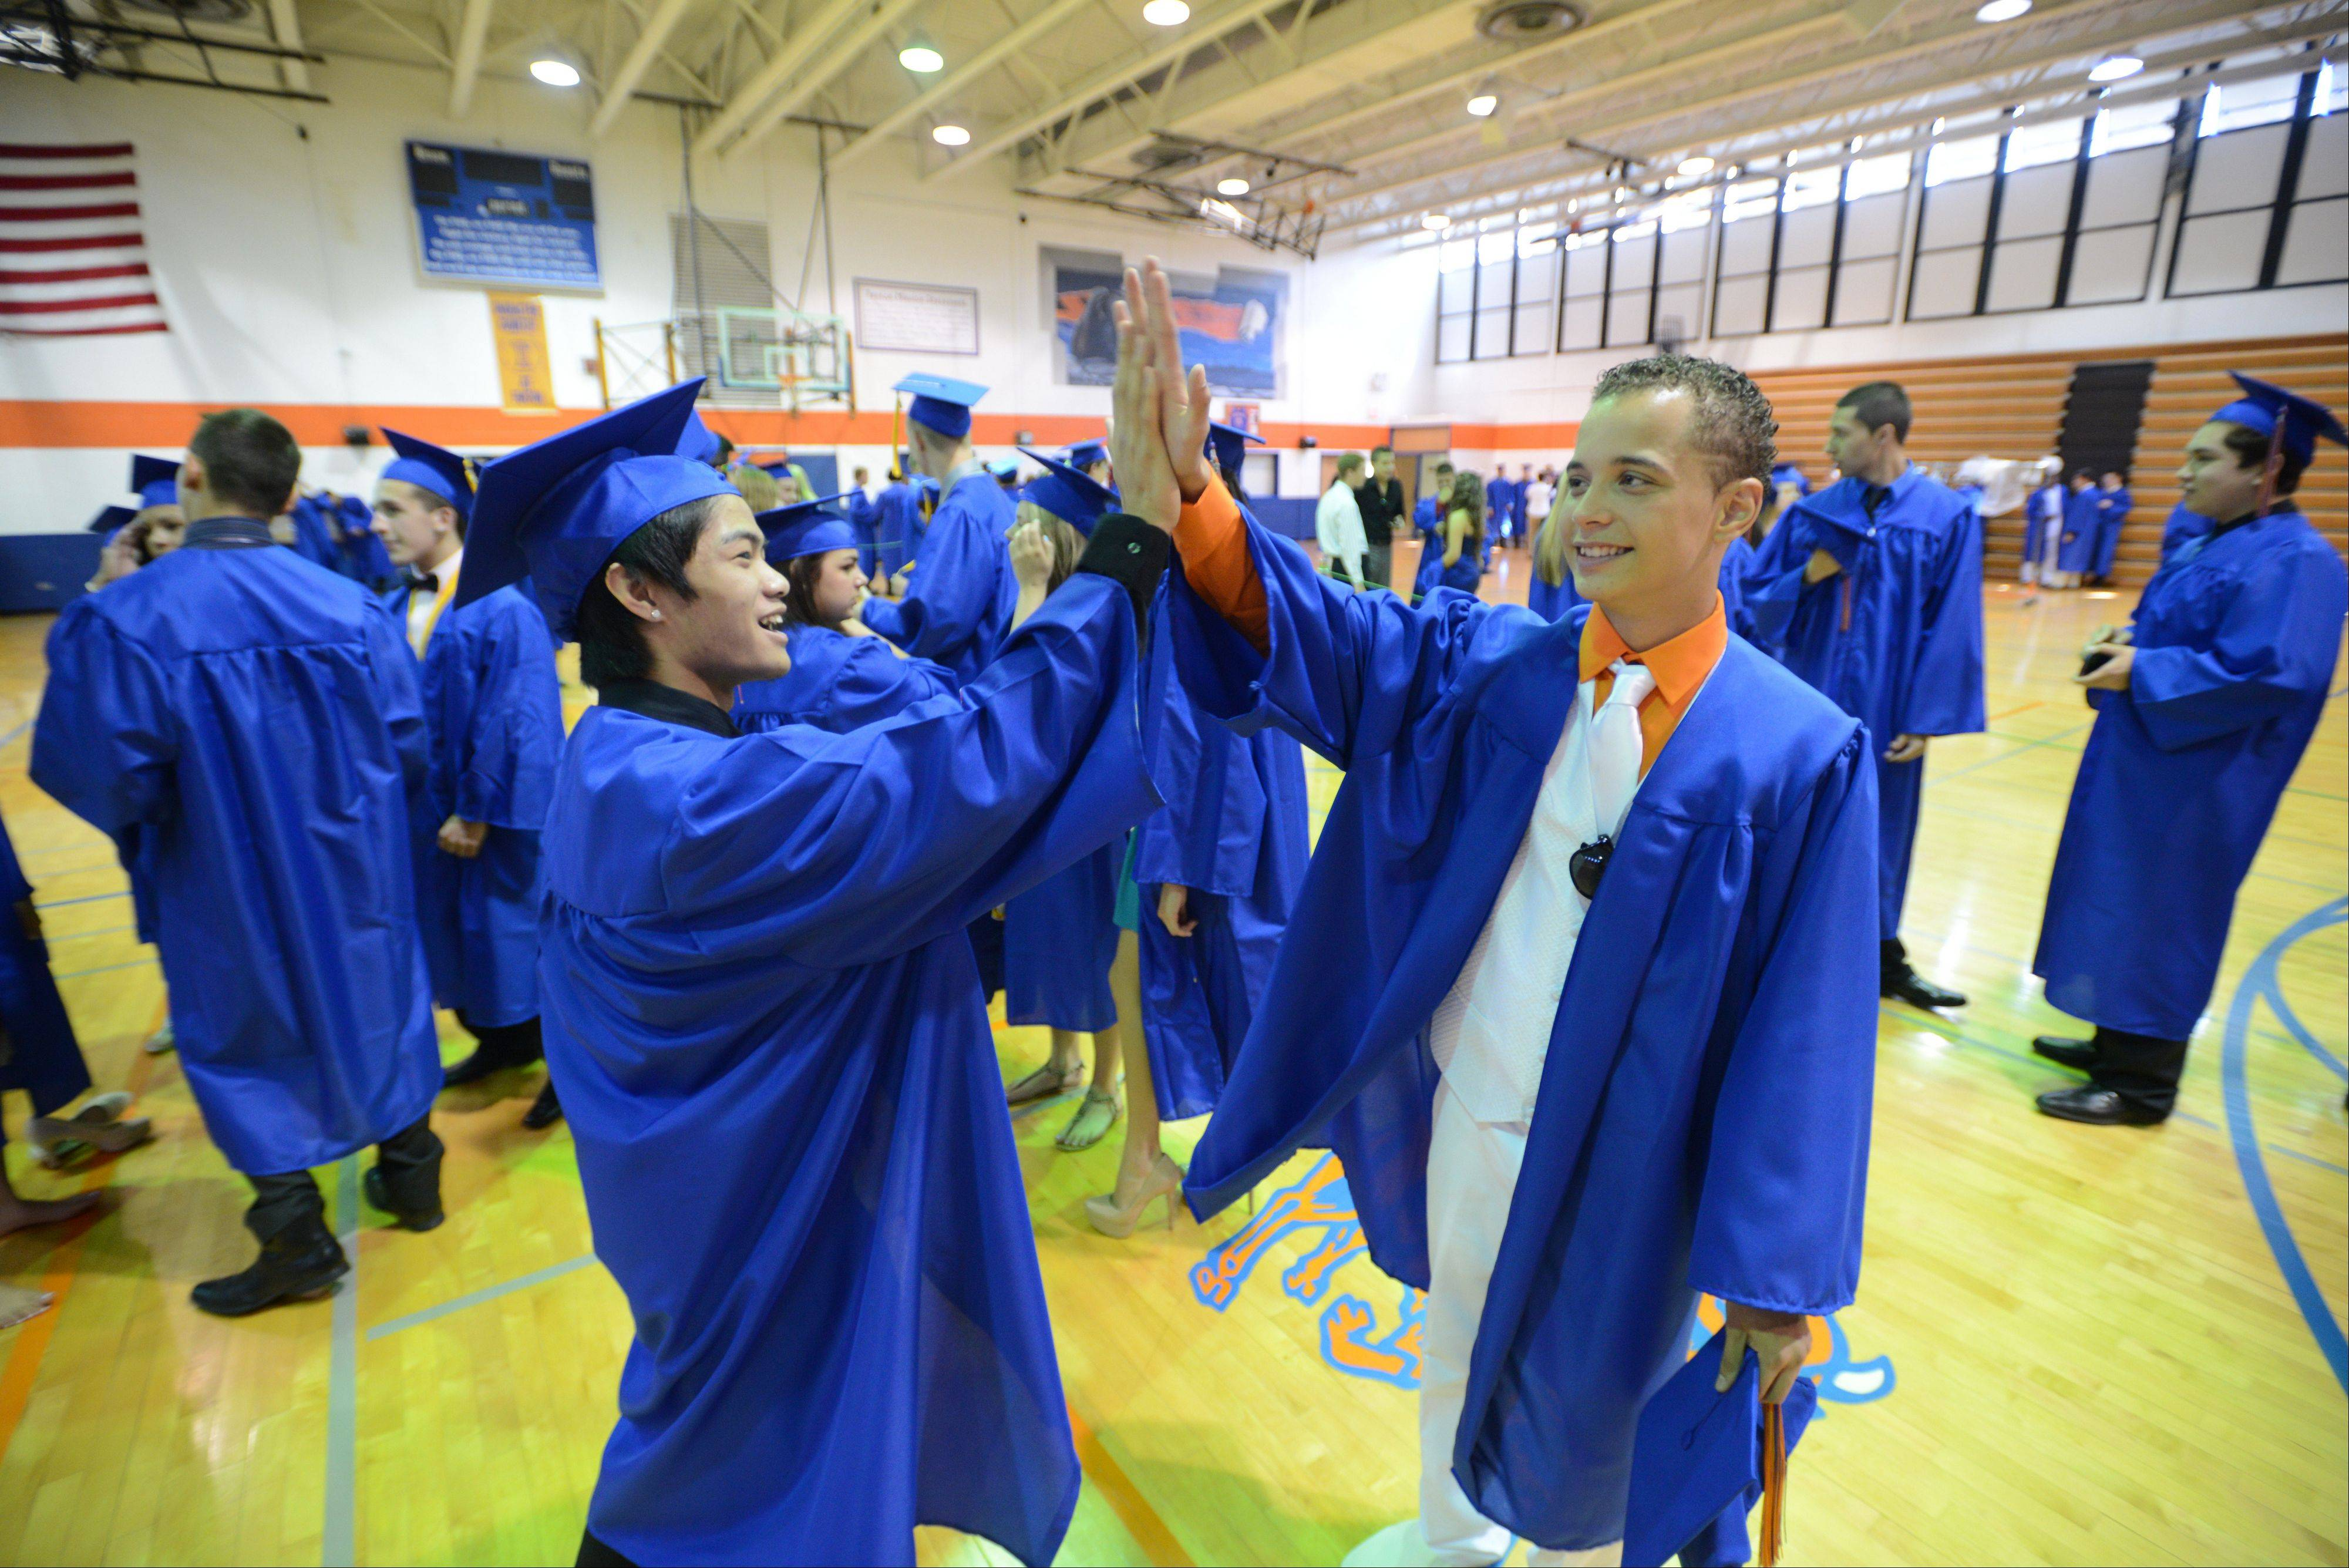 Images from the Fenton High School graduation on Sunday, May 19 in Bensenville.